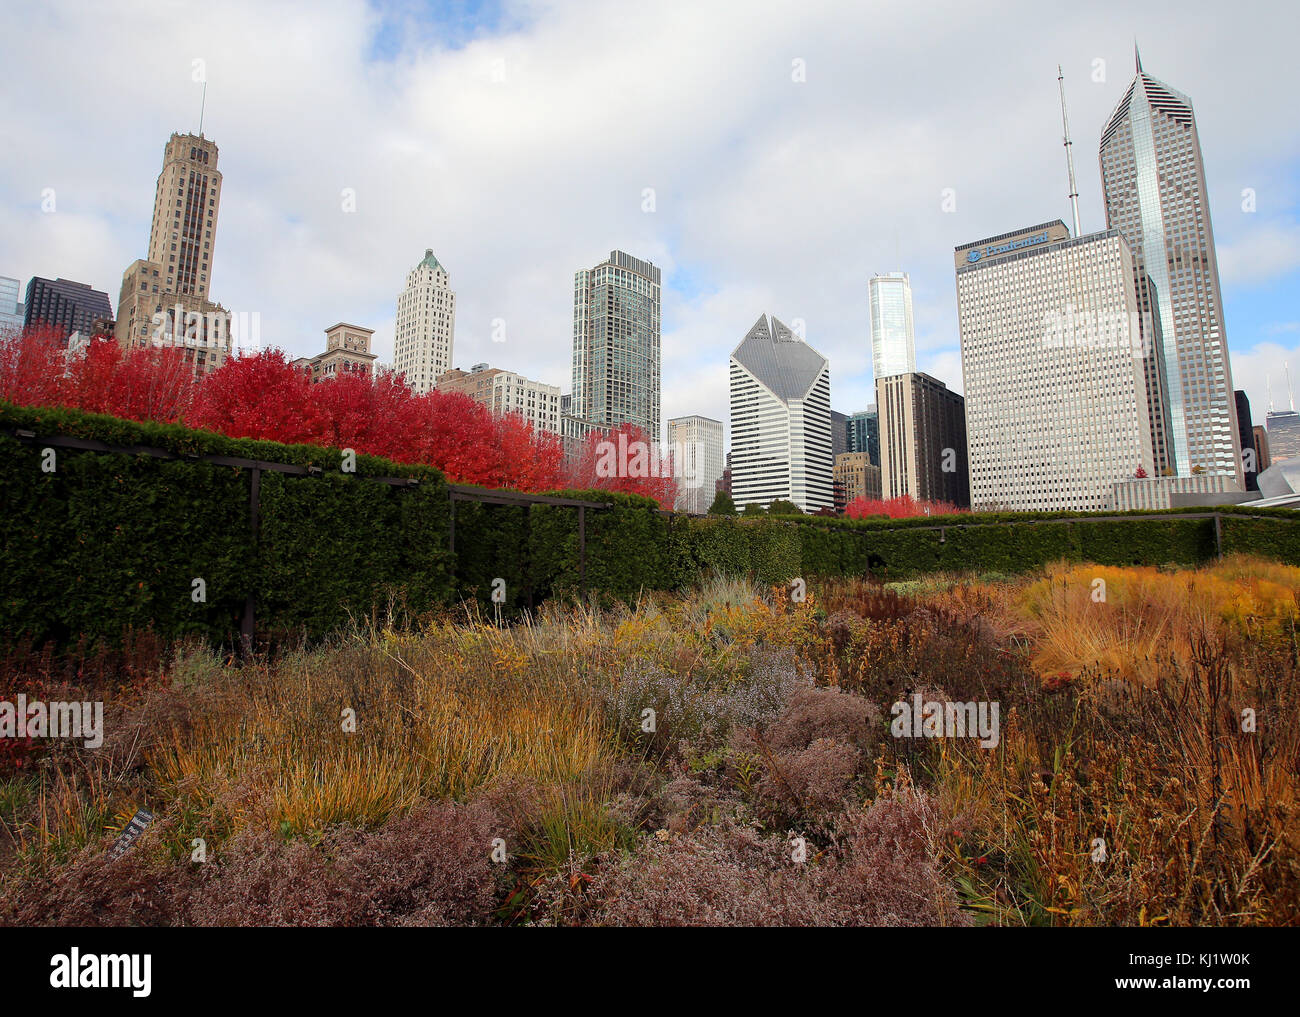 Chicago Lurie Garden Stock Photos & Chicago Lurie Garden Stock ...